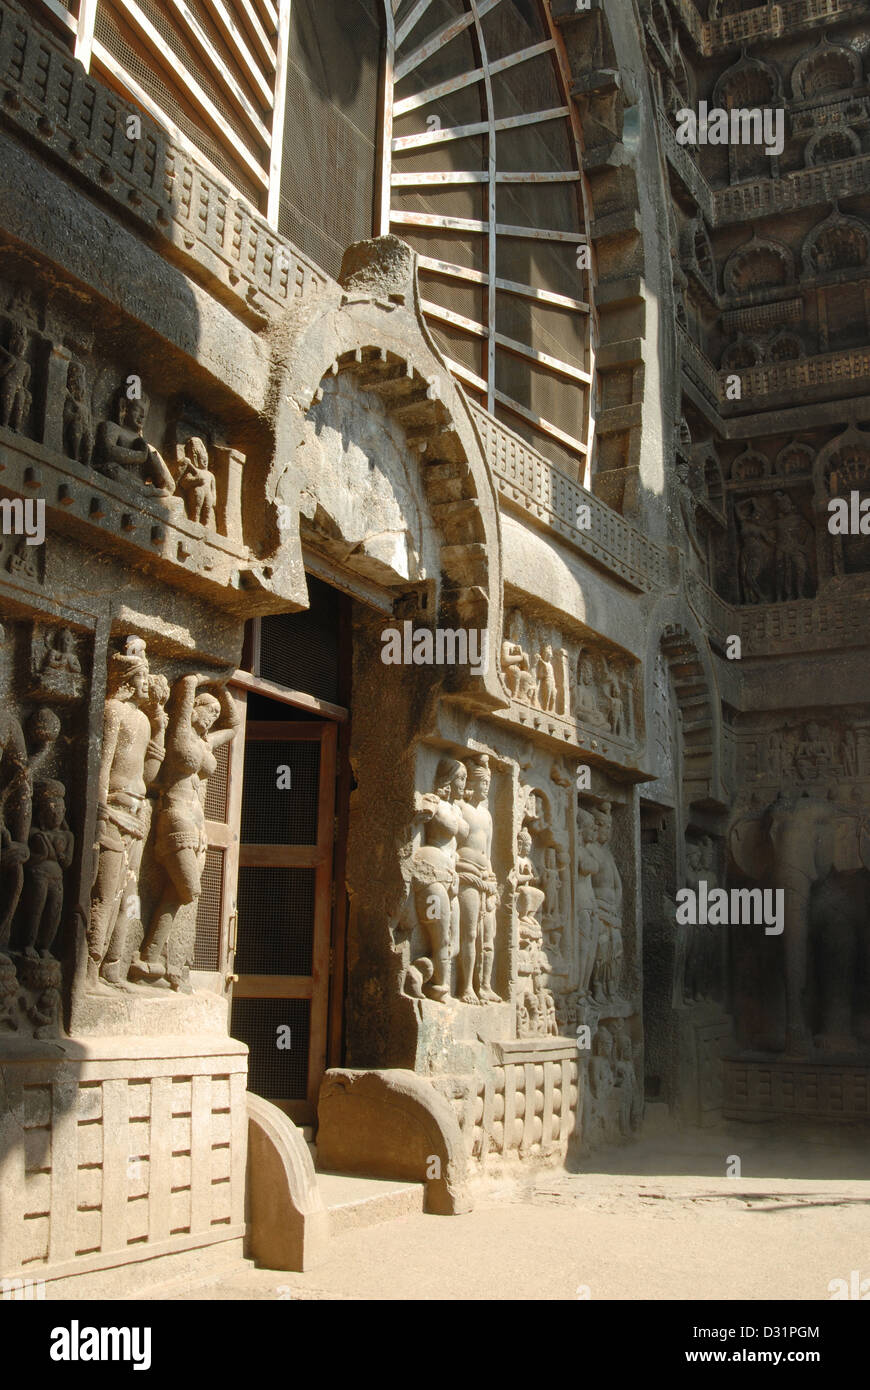 General-View of the Façade, Lower showing Chaitya arch, Mithuna couple and Sanchi rail pattern at the bottom, - Stock Image